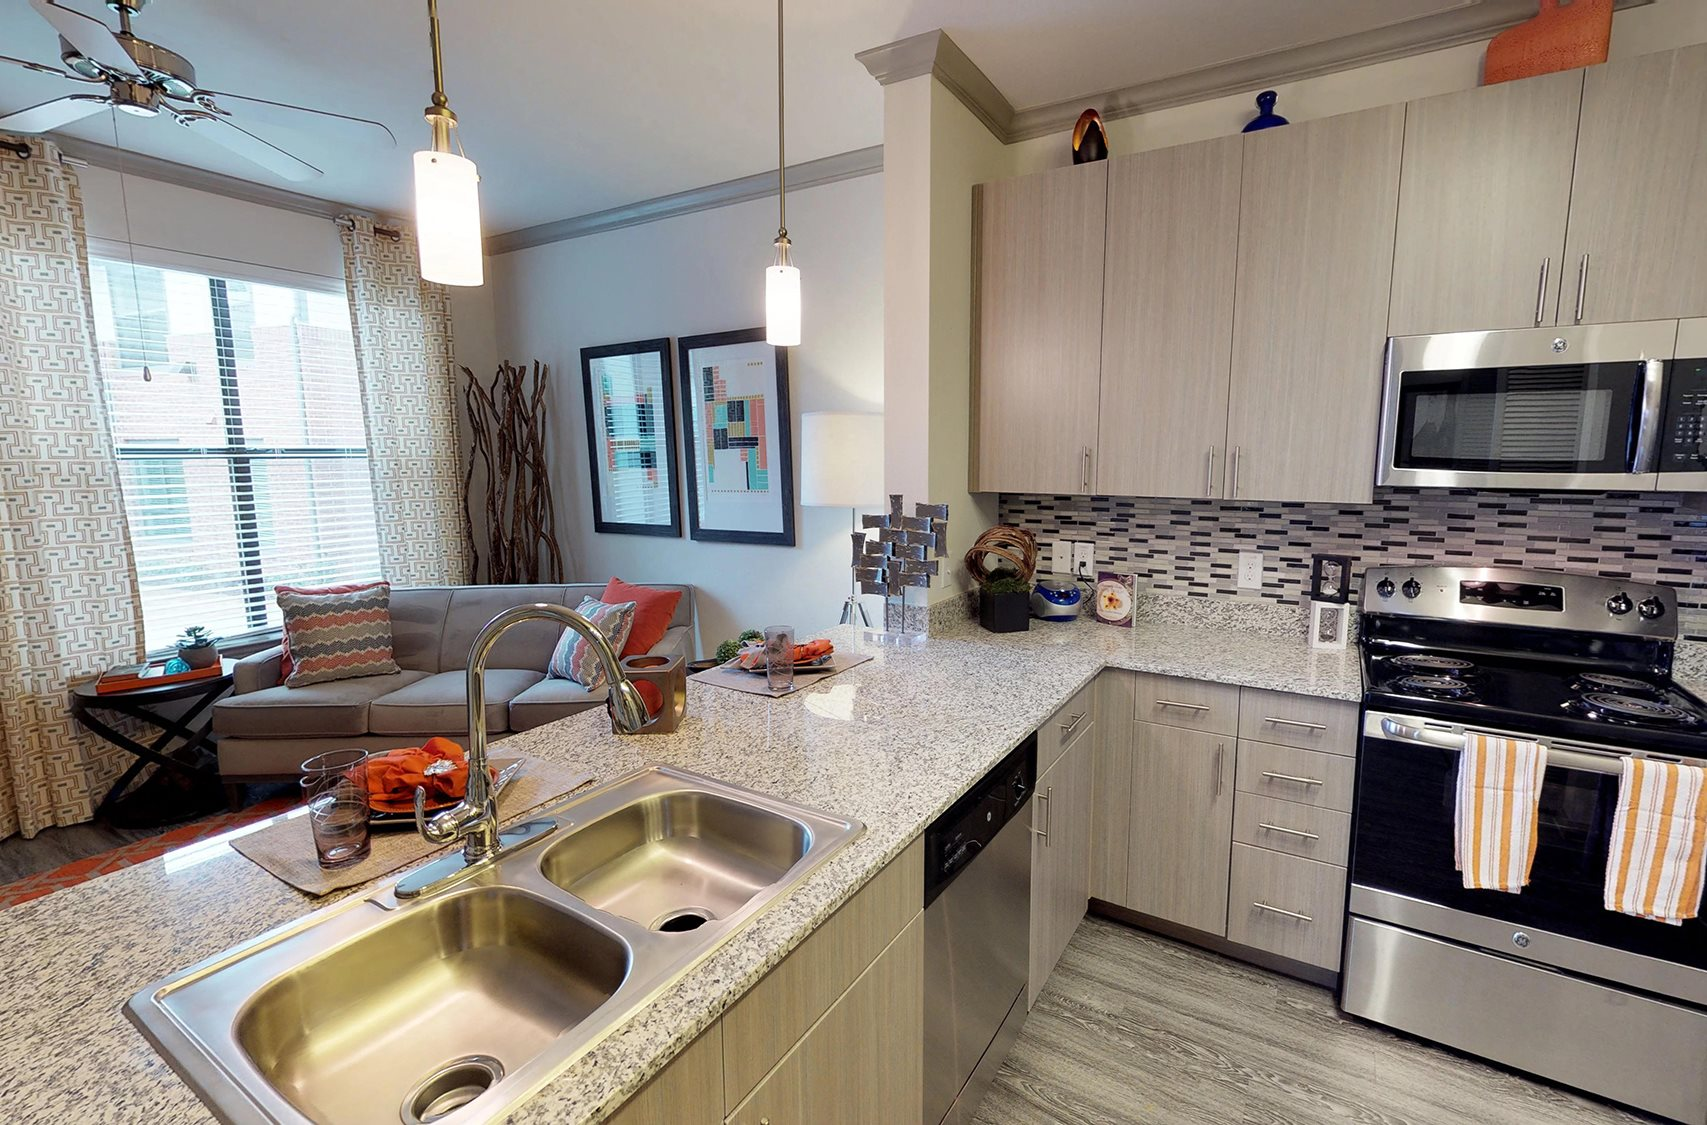 Pflugerville apartments the emerson welcome home - 2 bedroom apartments pflugerville tx ...